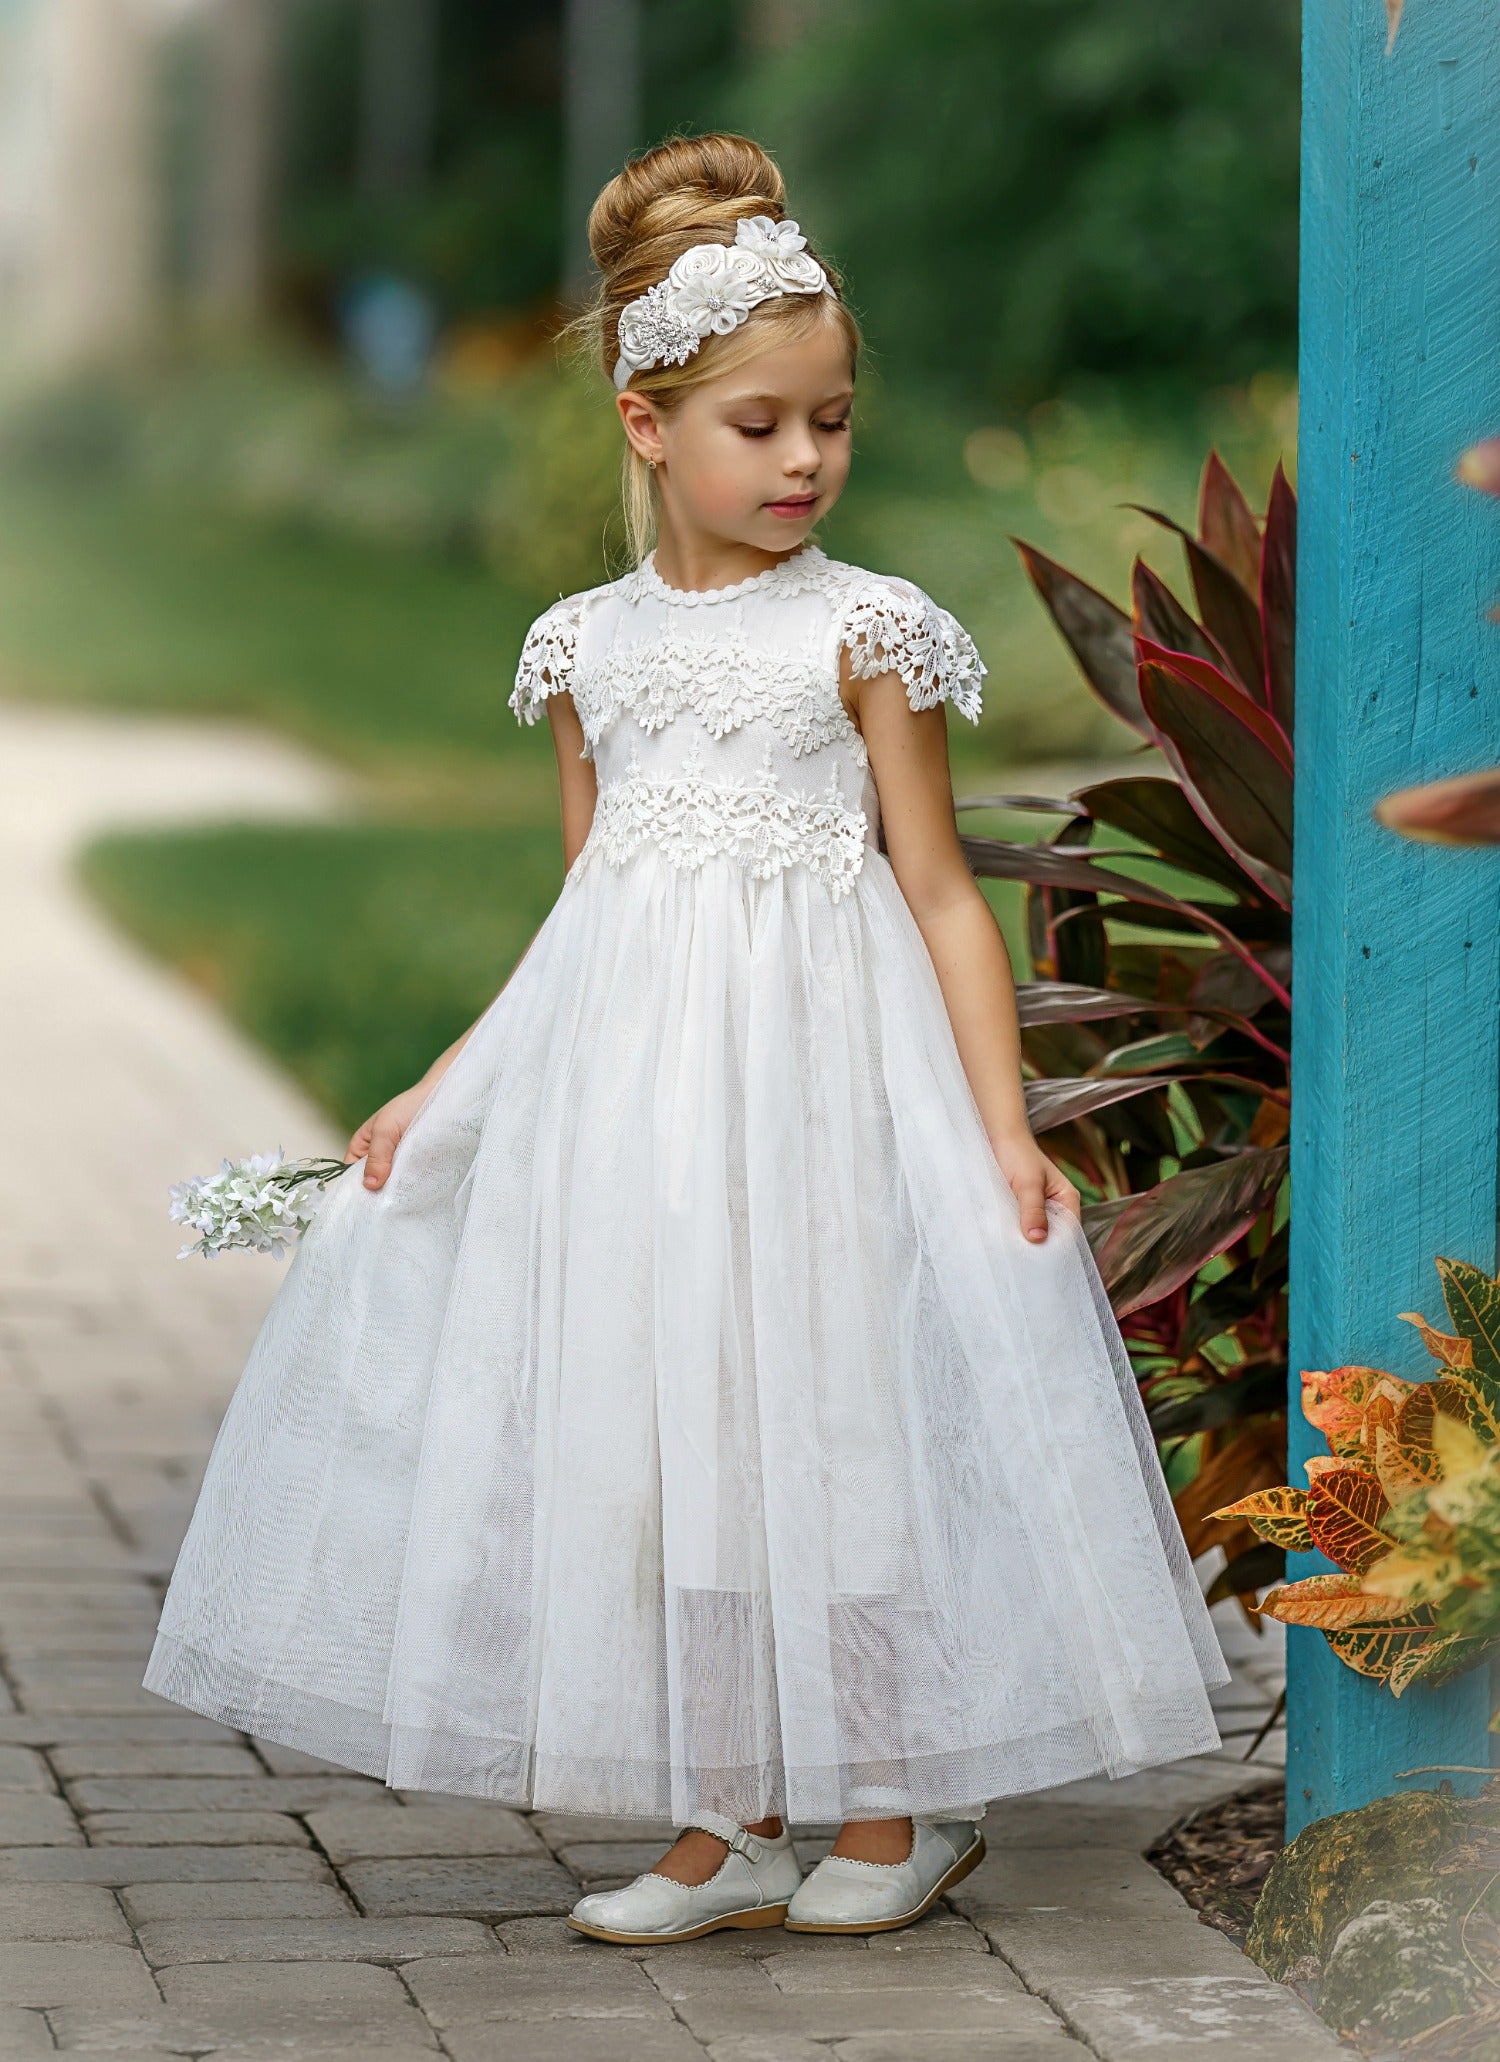 Finding the Perfect Dress for Your Flower Girl - Pink Is